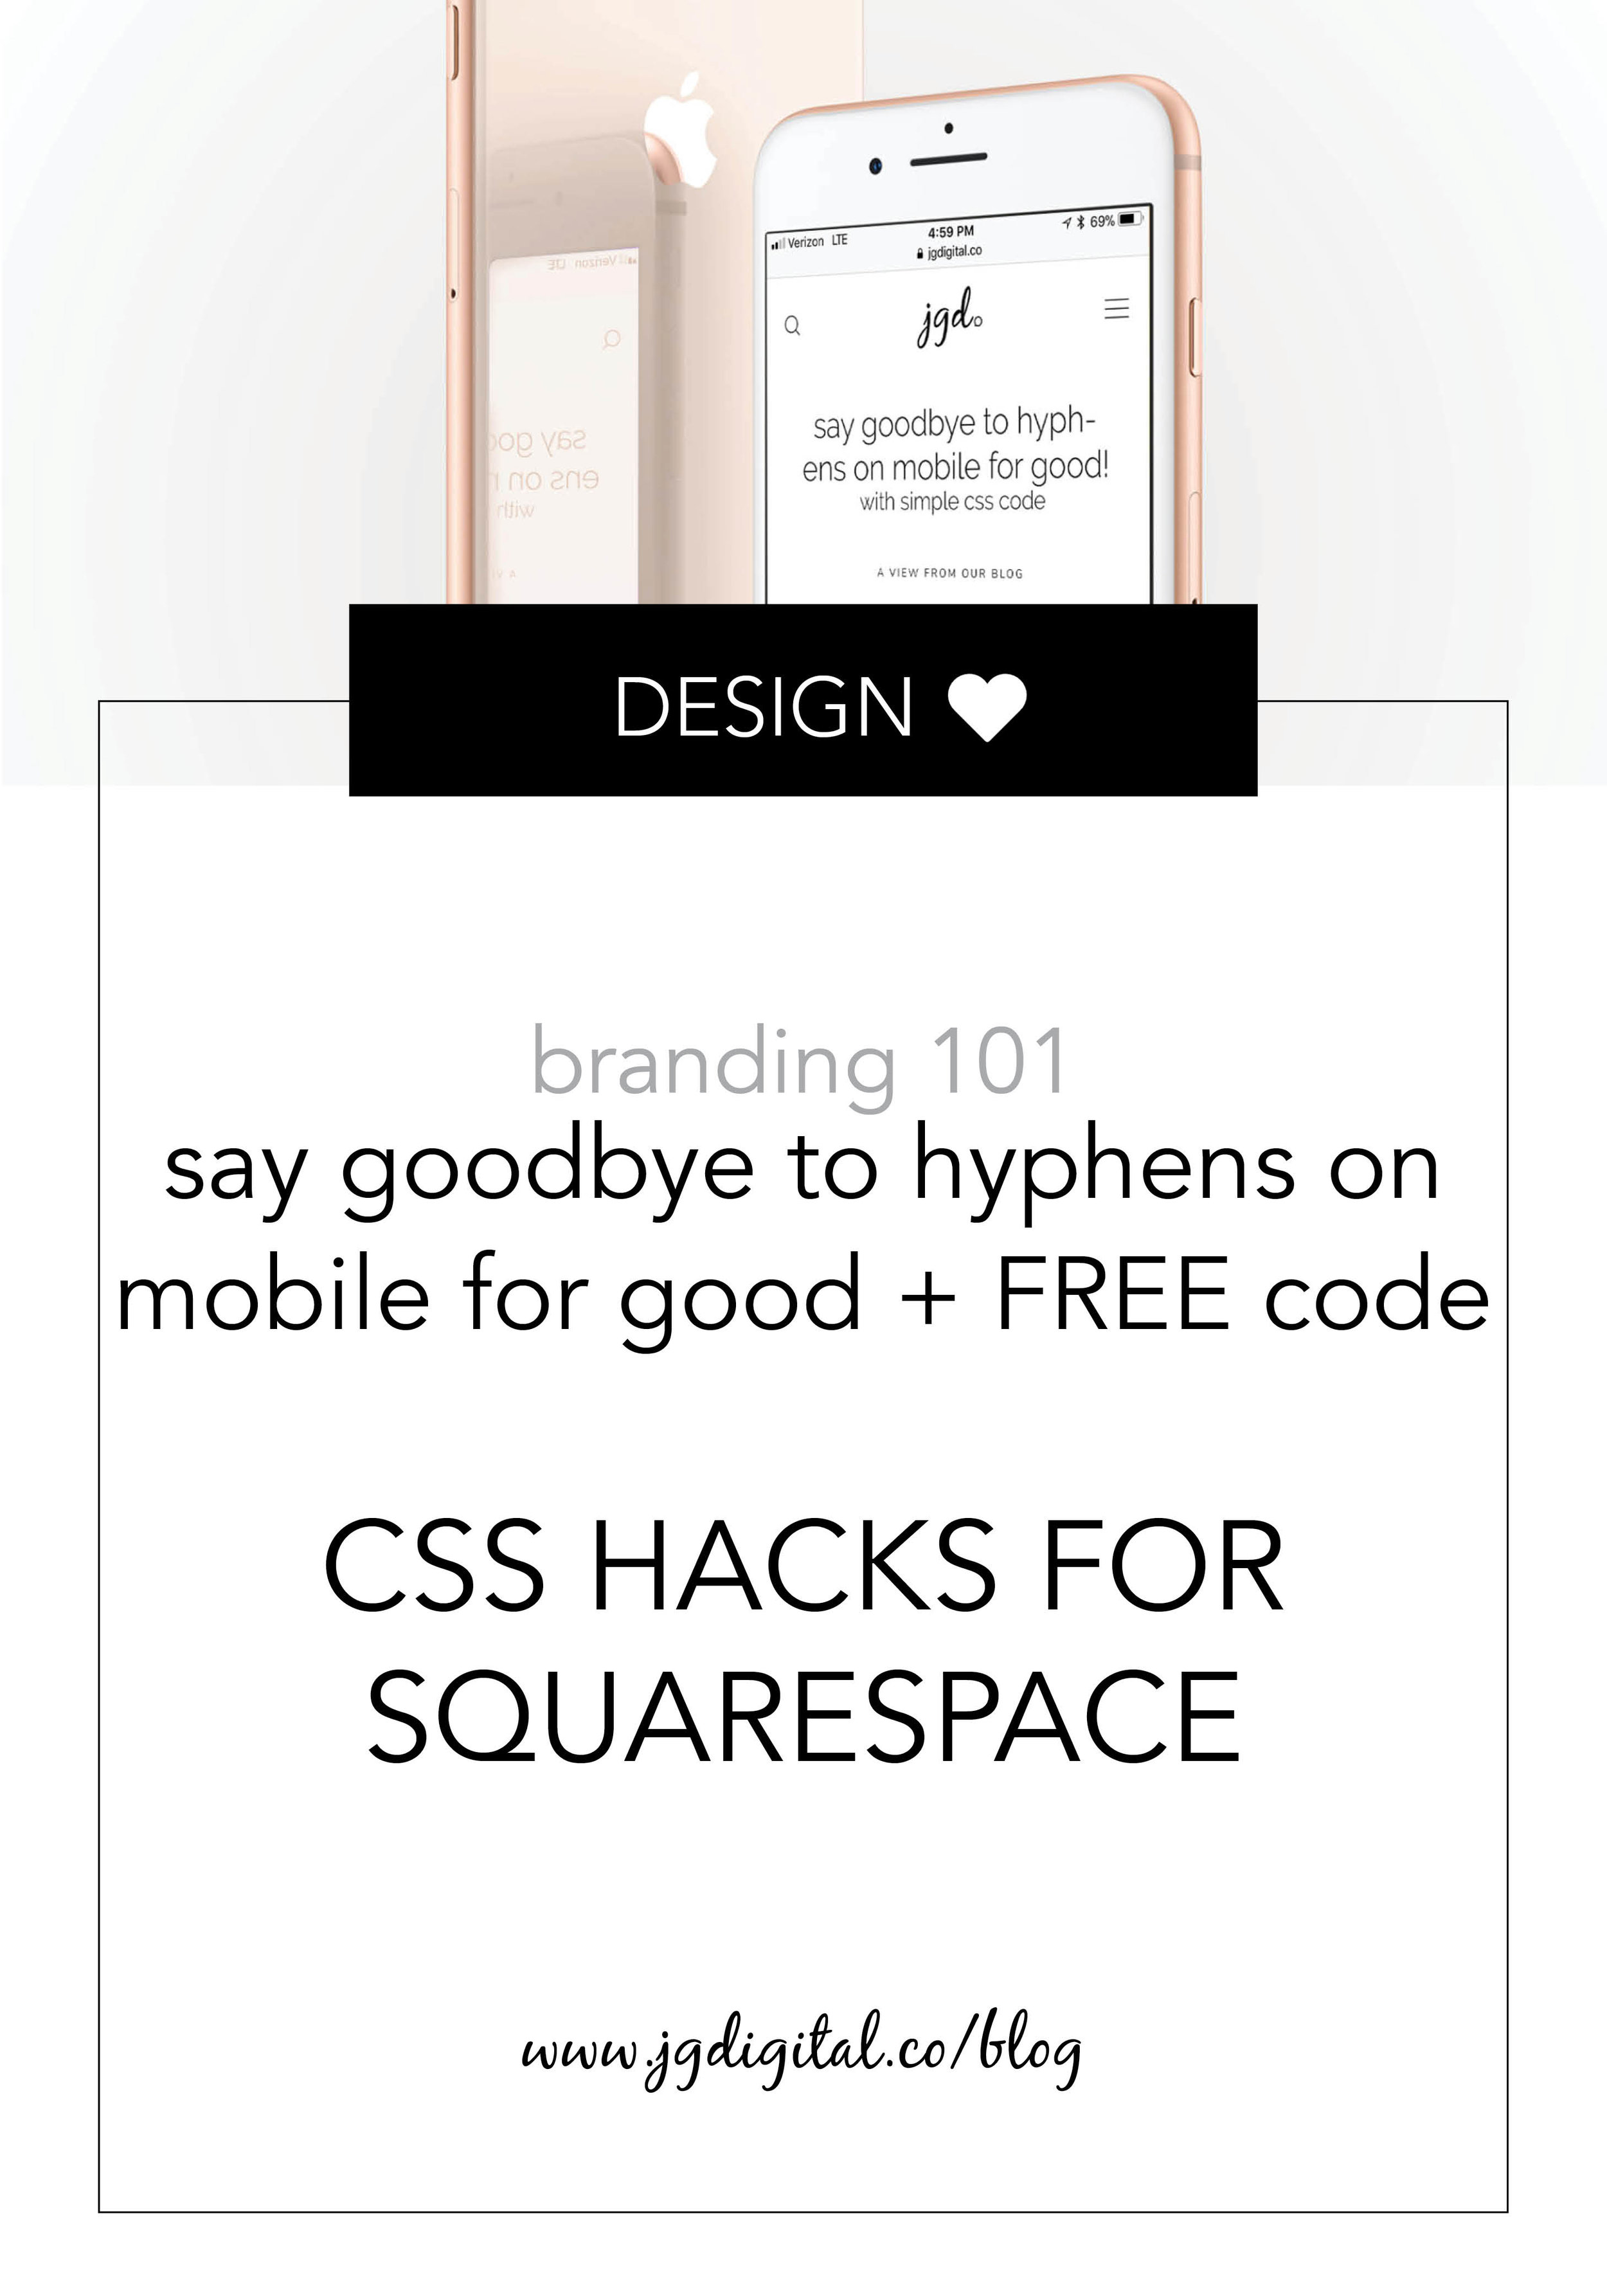 Learn How to Remove Hyphens in Text Blocks on Mobile - For Good! FREE & Simple CSS Code and Step-by-Step Process Included by jgdigital.co